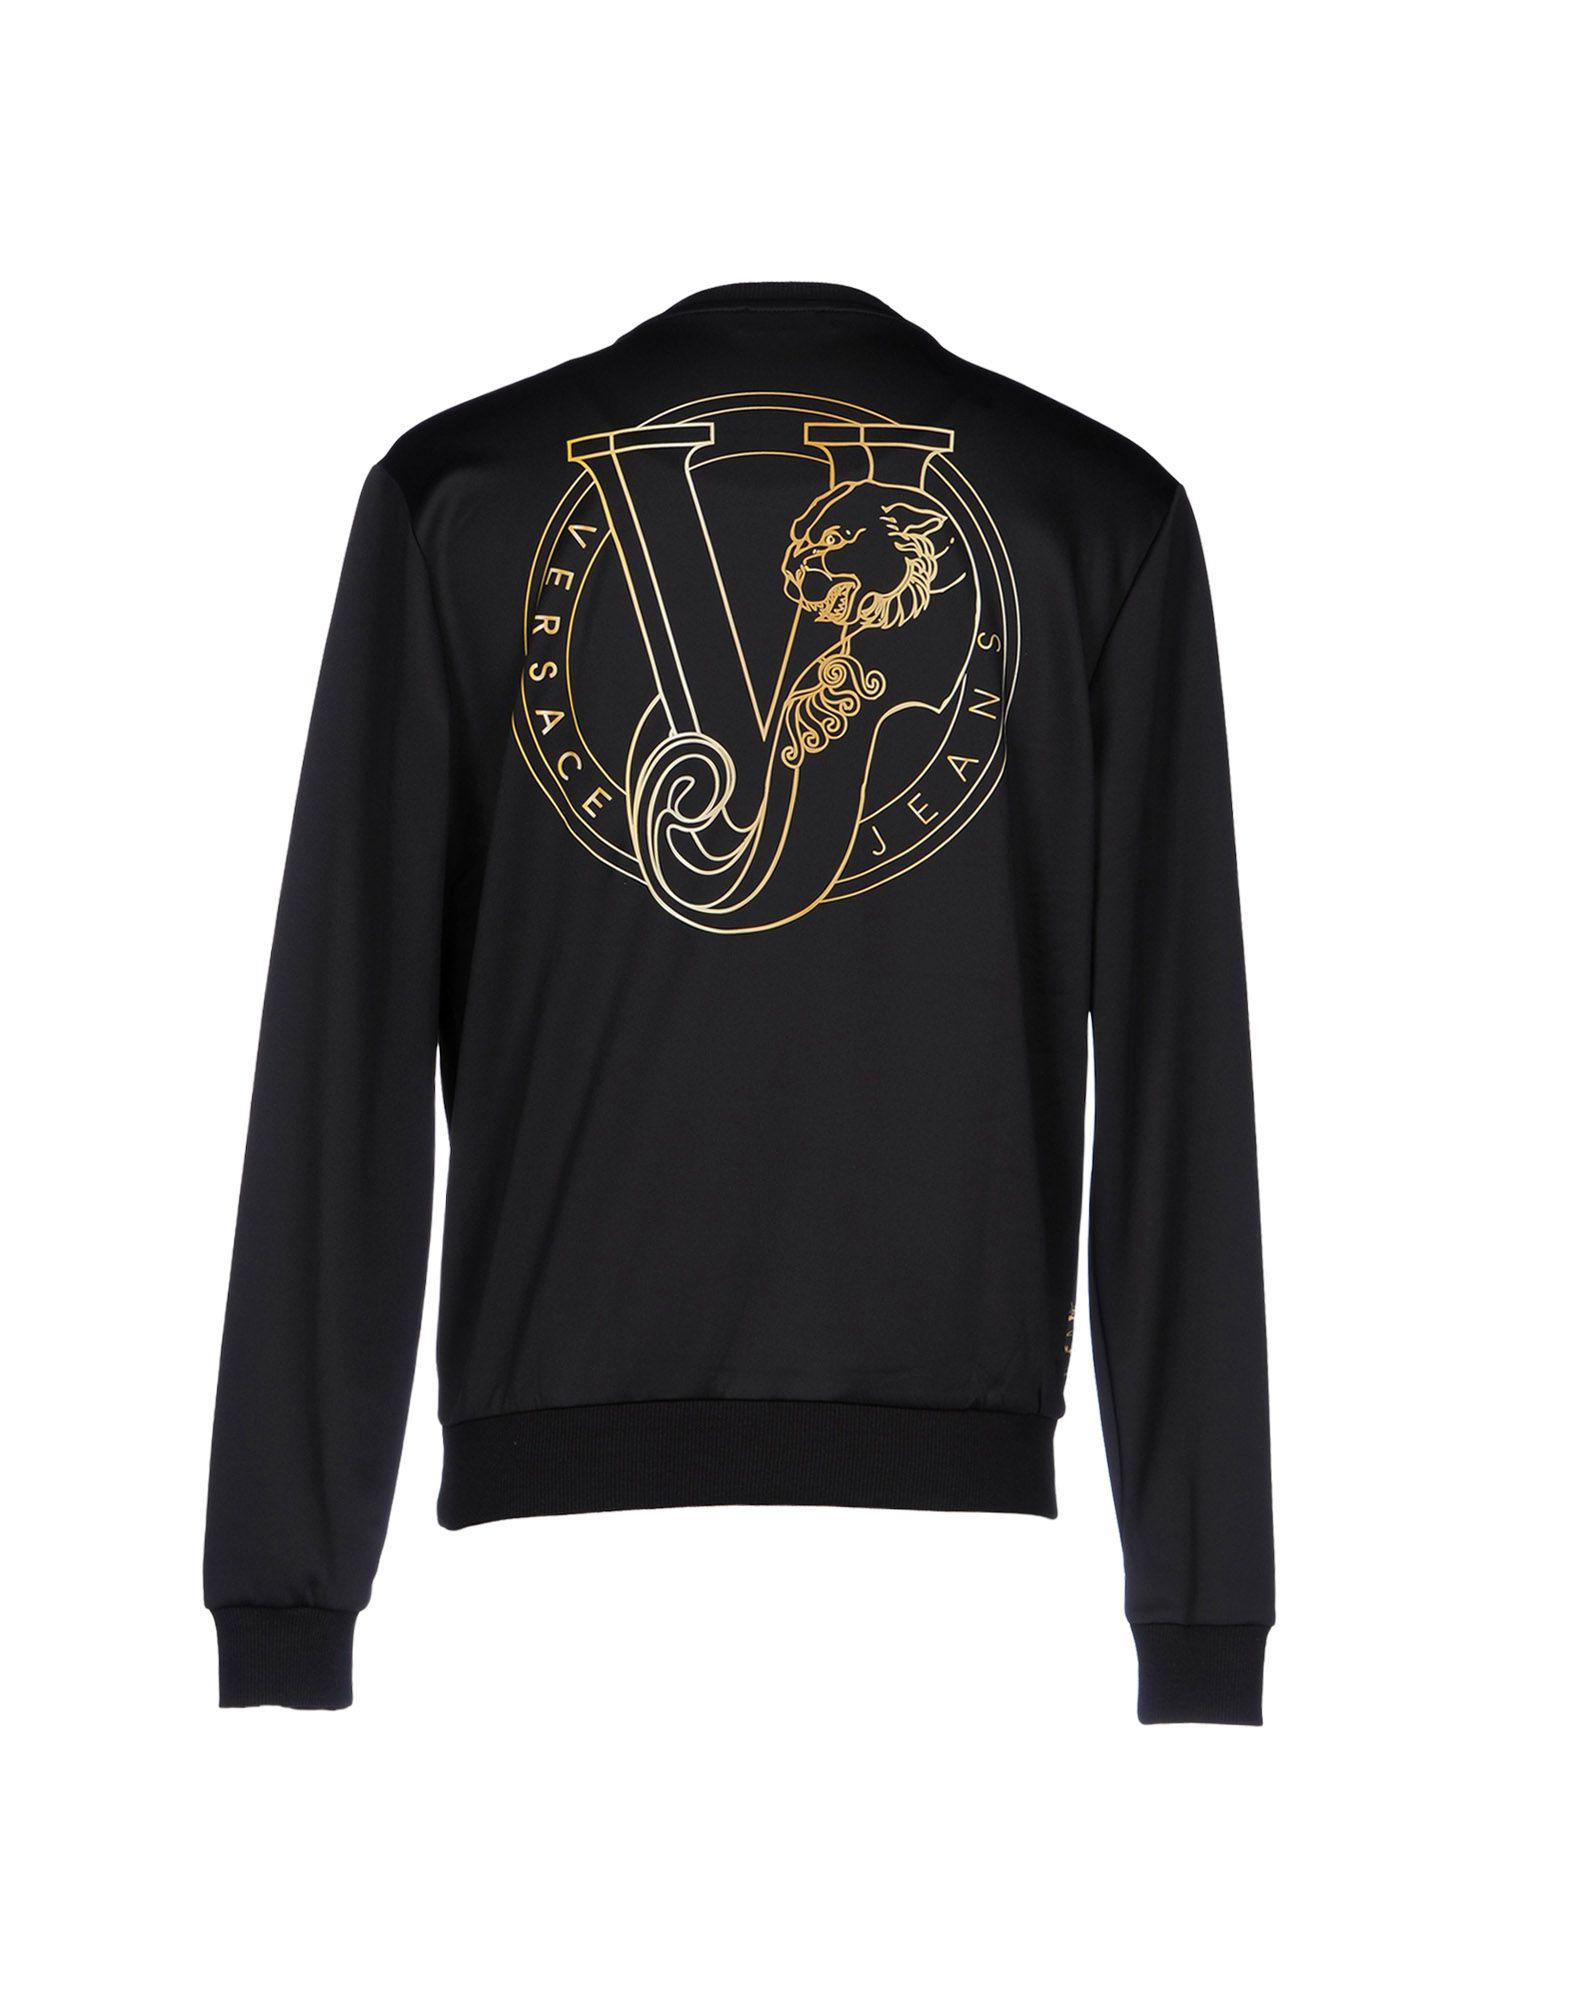 Versace Jeans Couture Cotton Sweatshirt in Black for Men